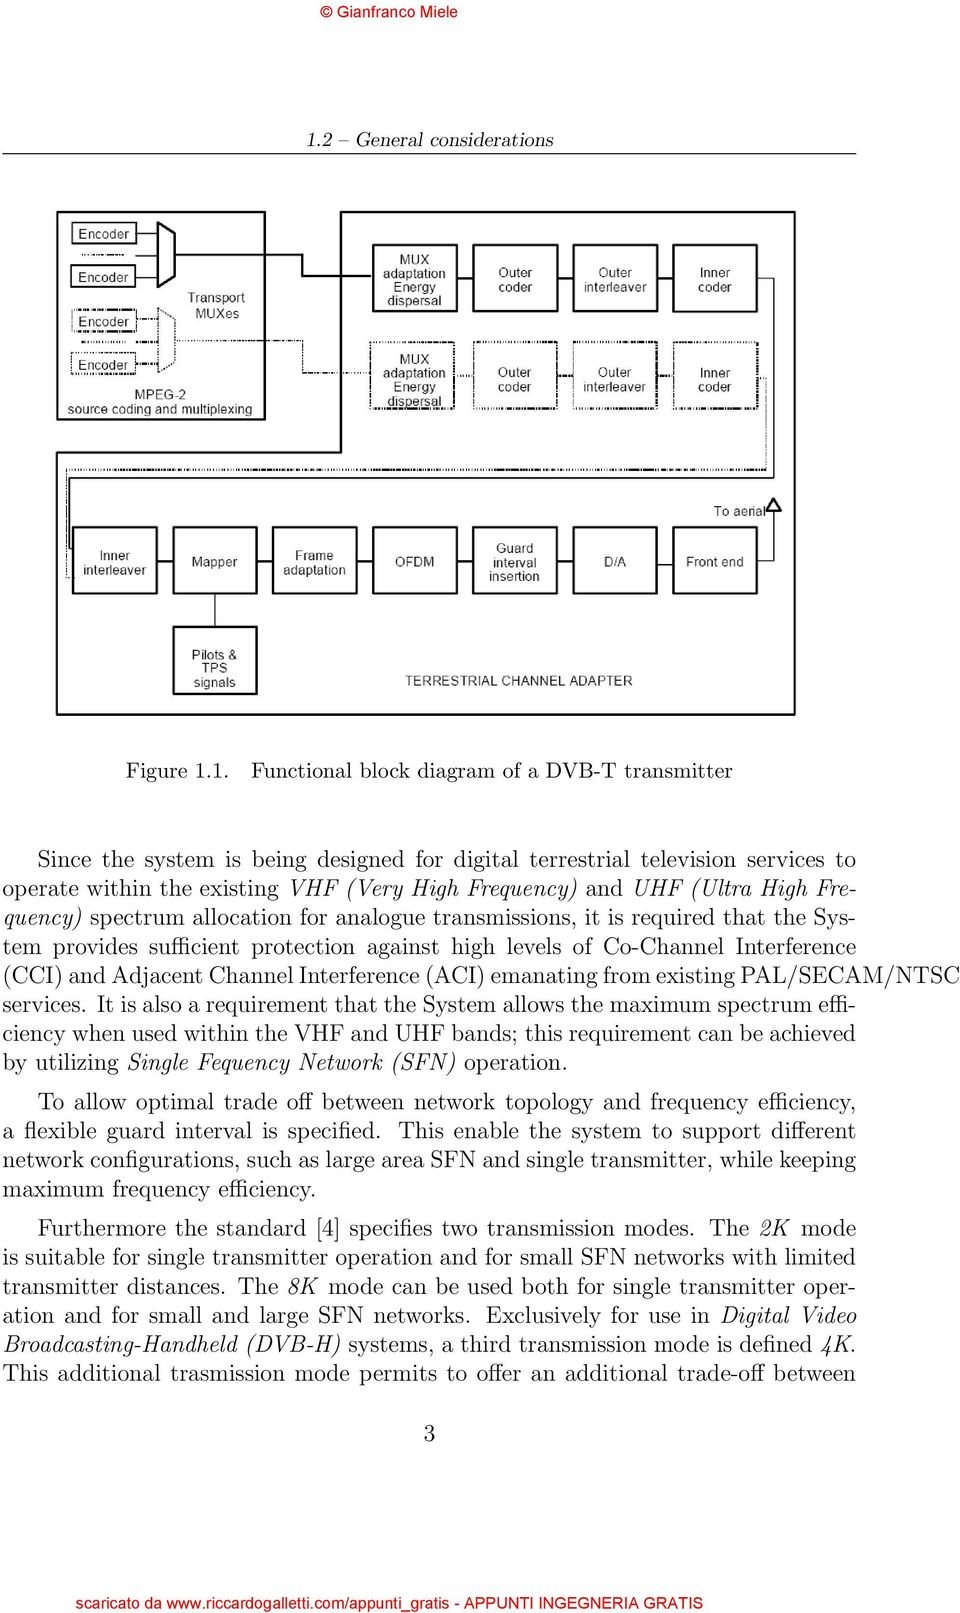 Introduzione Alle Reti Dvb H Pdf Transmitter Block Diagram For Pal System Images Co Channel Interference Cci And Adjacent Aci Emanating From